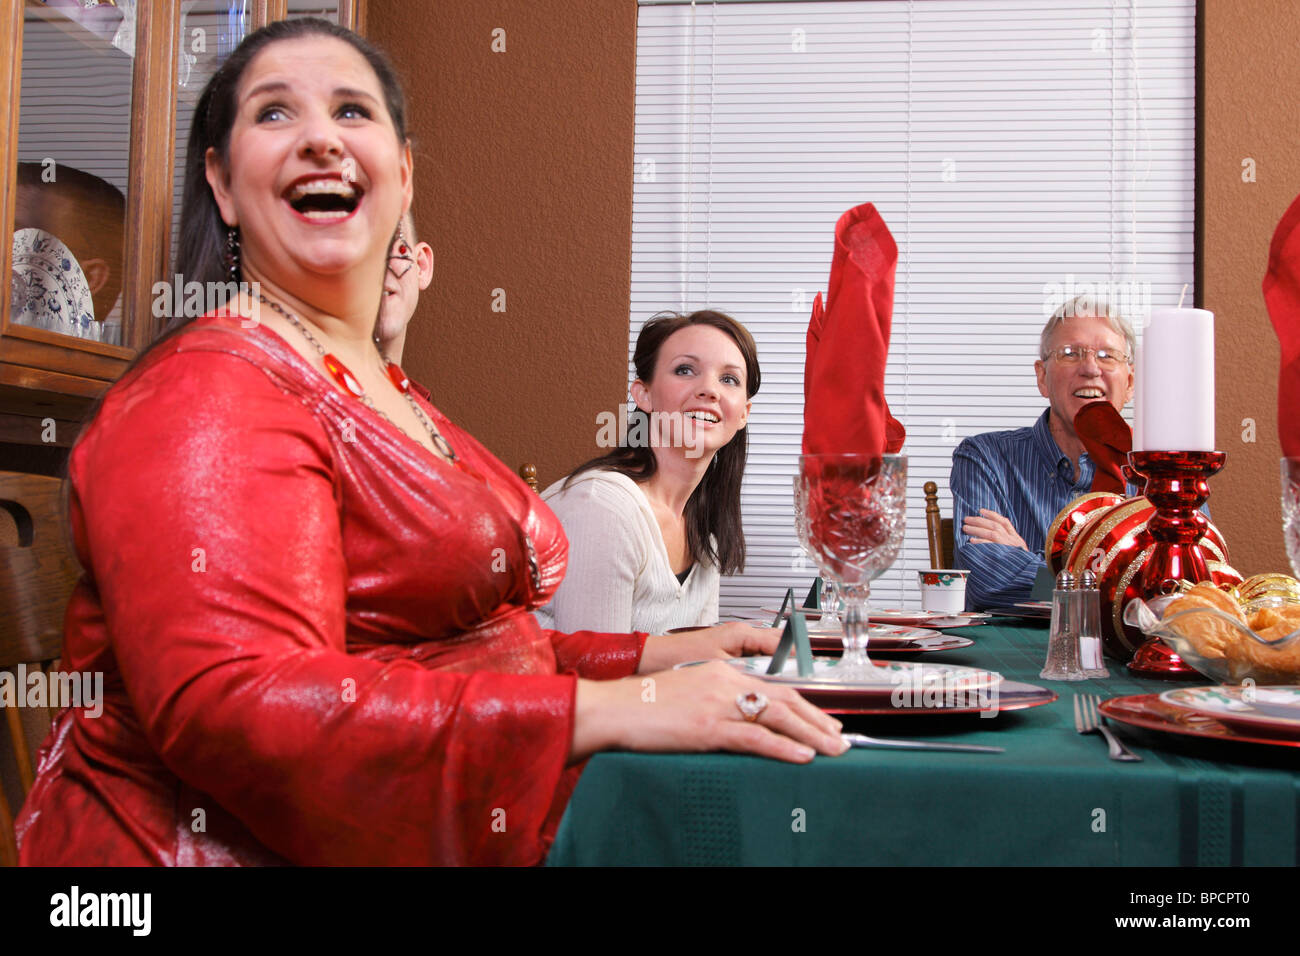 Family sharing Christmas dinner together - Stock Image